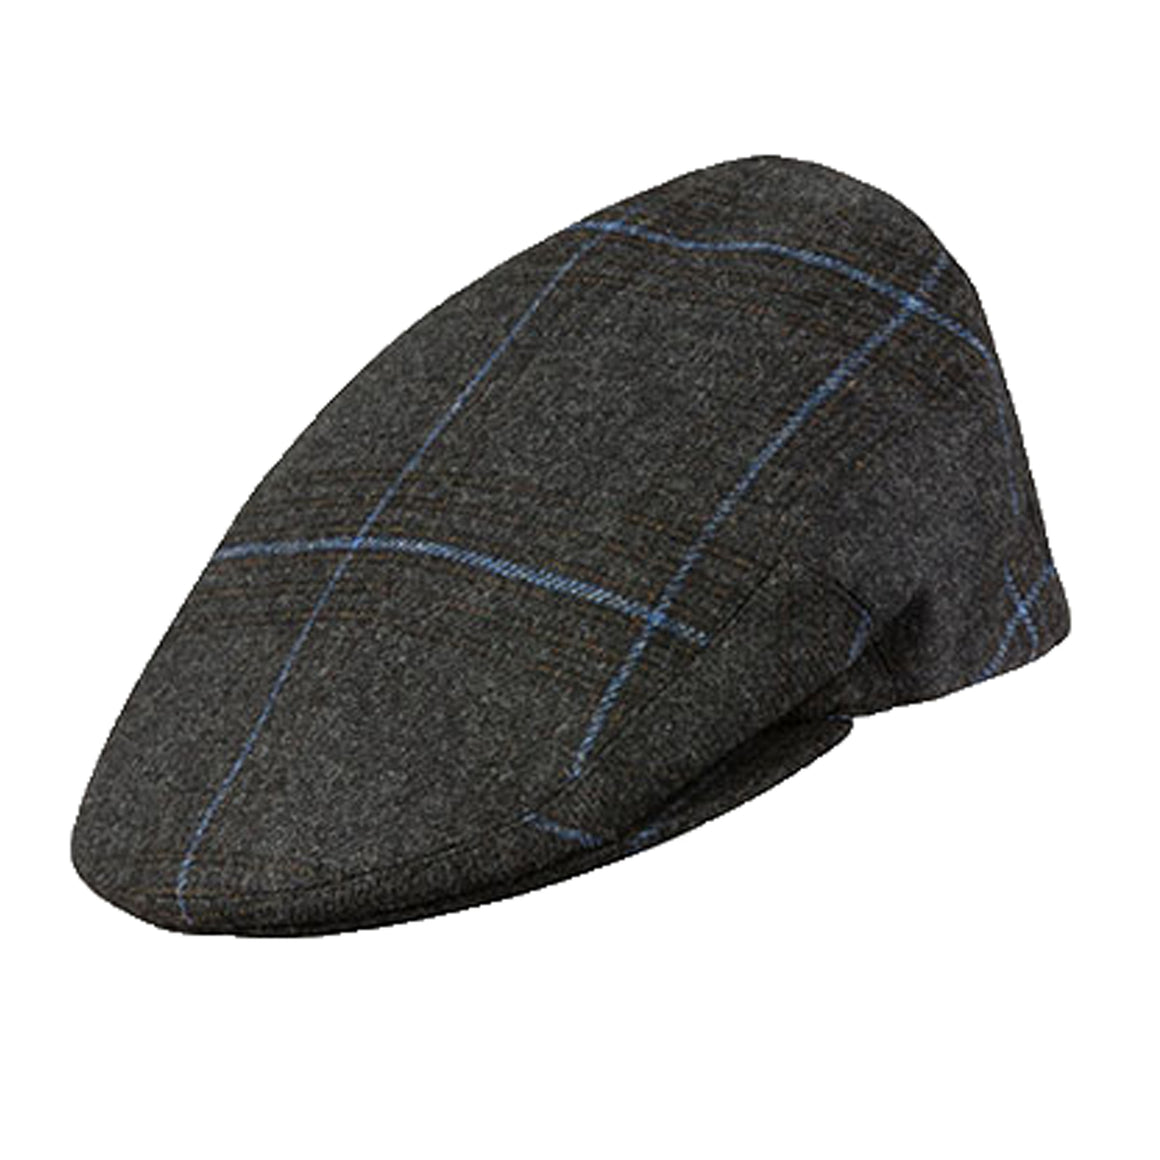 Kinloch Flat Cap  for Men in Charcoal